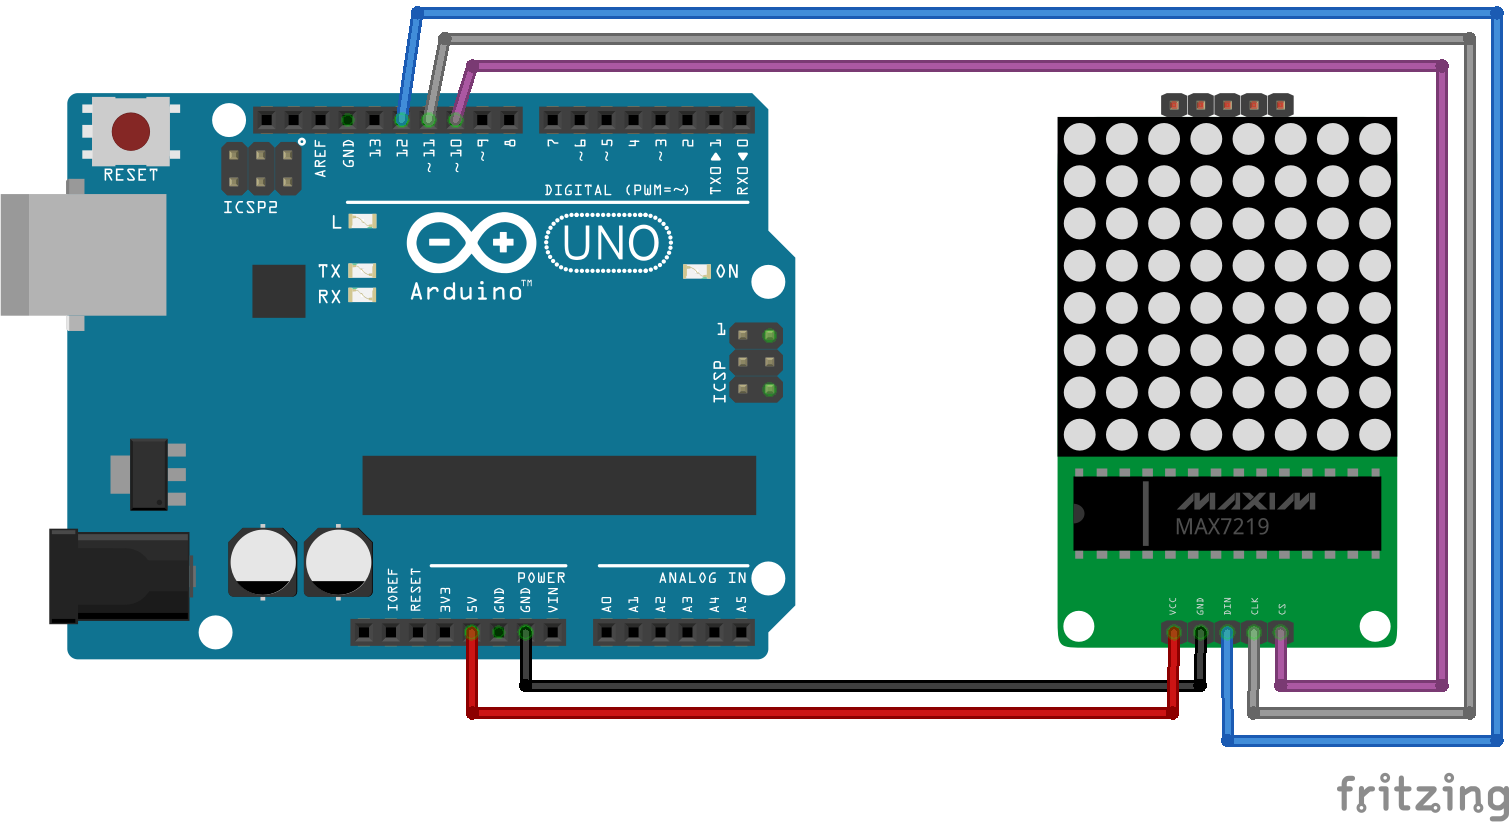 Controlling RGB Matrices with Arduino - SparkFun Electronics